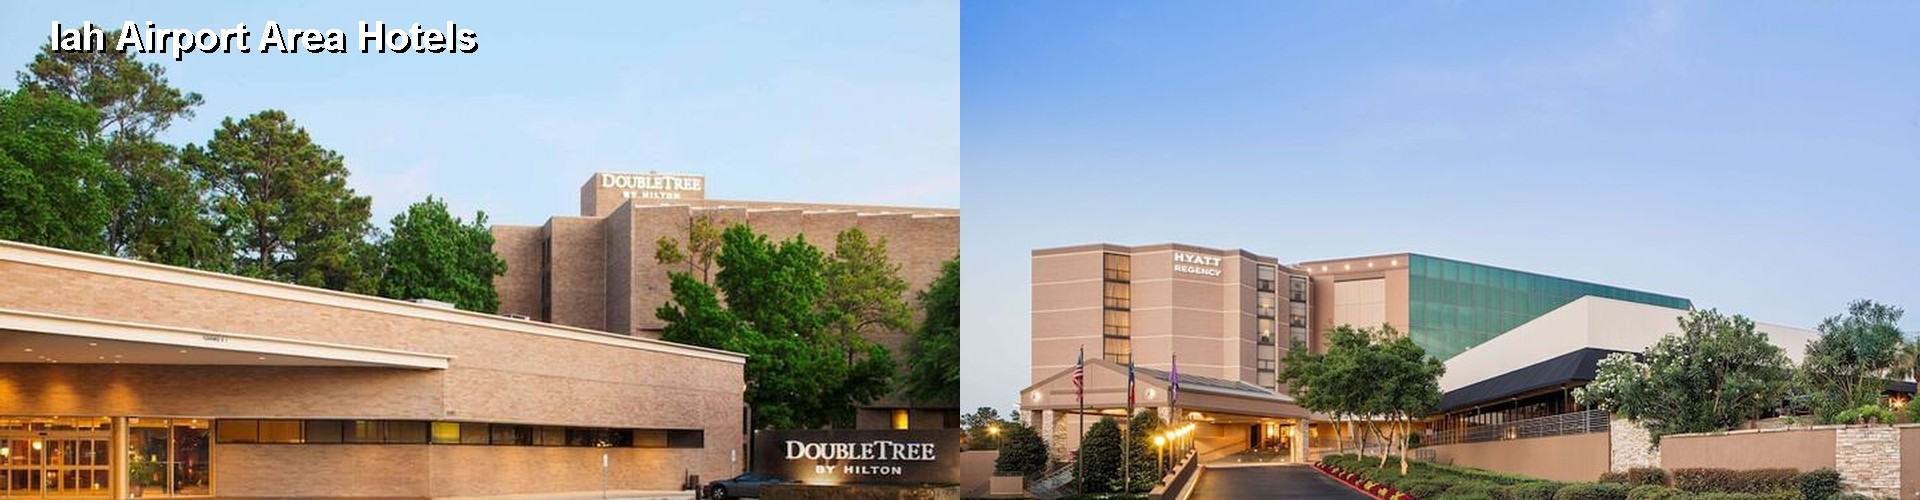 43 hotels near iah airport area in houston tx. Black Bedroom Furniture Sets. Home Design Ideas